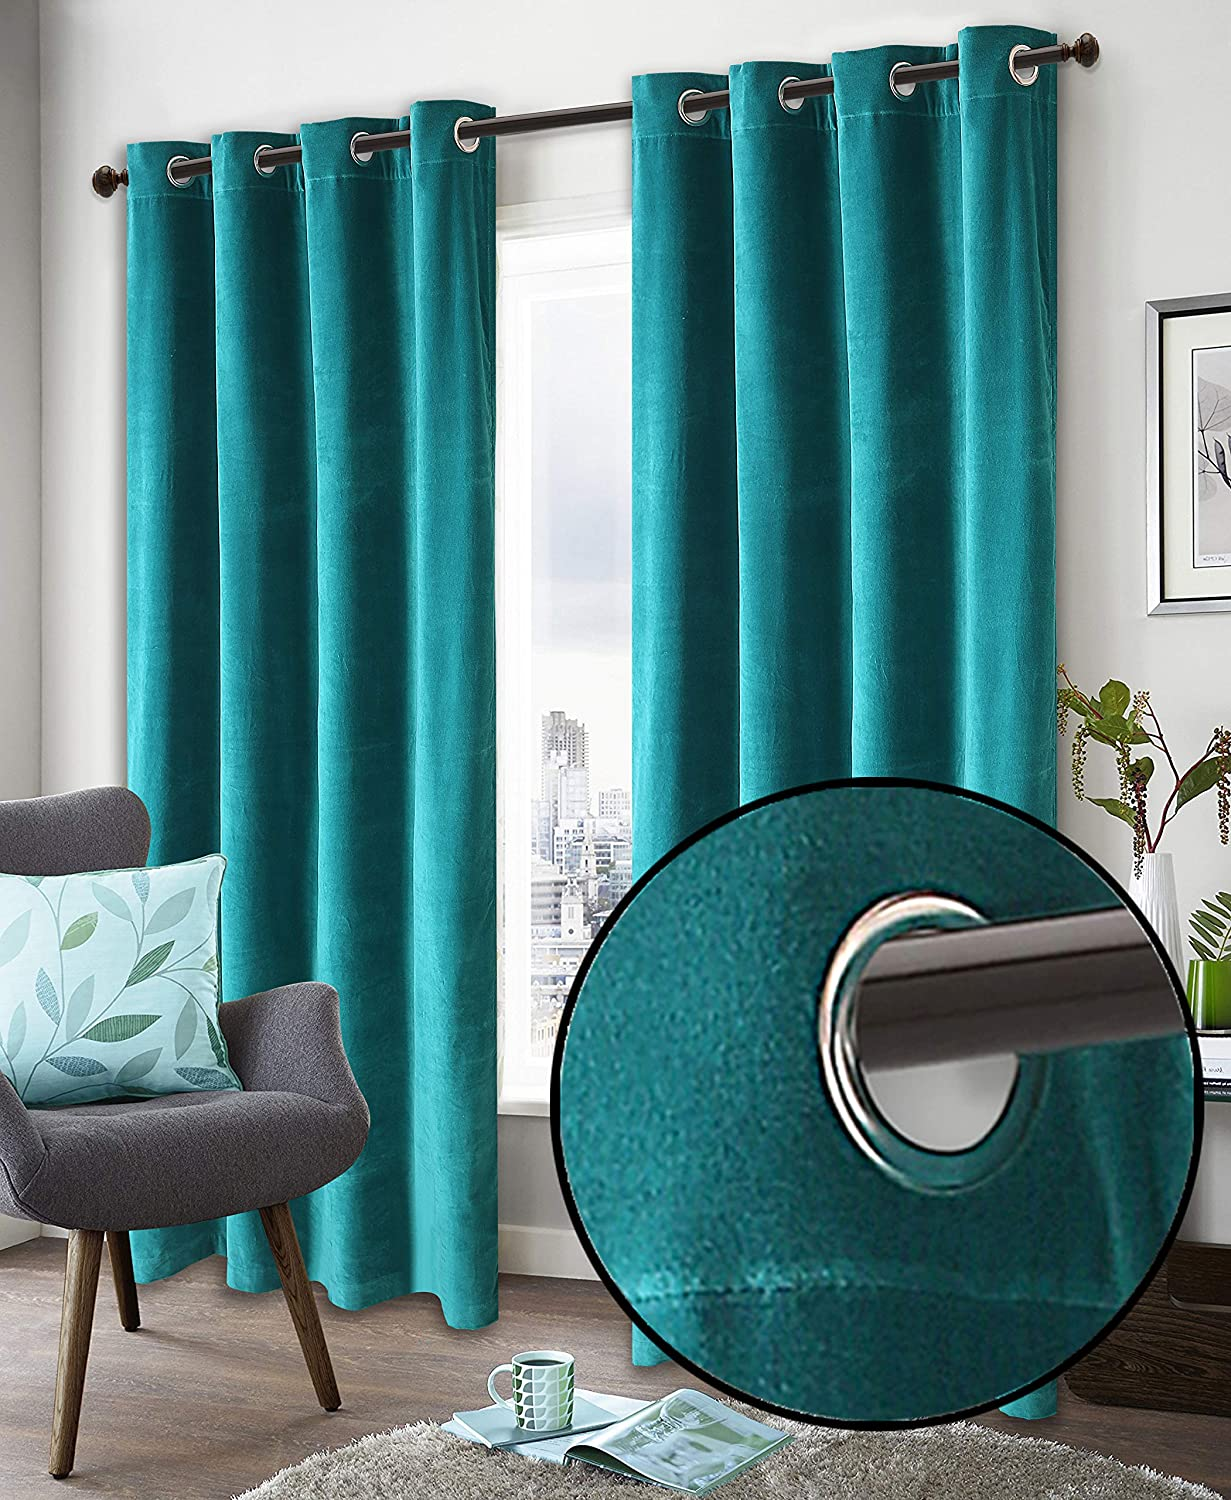 Super Soft Luxury Velvet Window Curtain, 50 Inch x 72 Inch, Velvet Cotton Grommet Window Curtain Panel, Set of 2, Teal